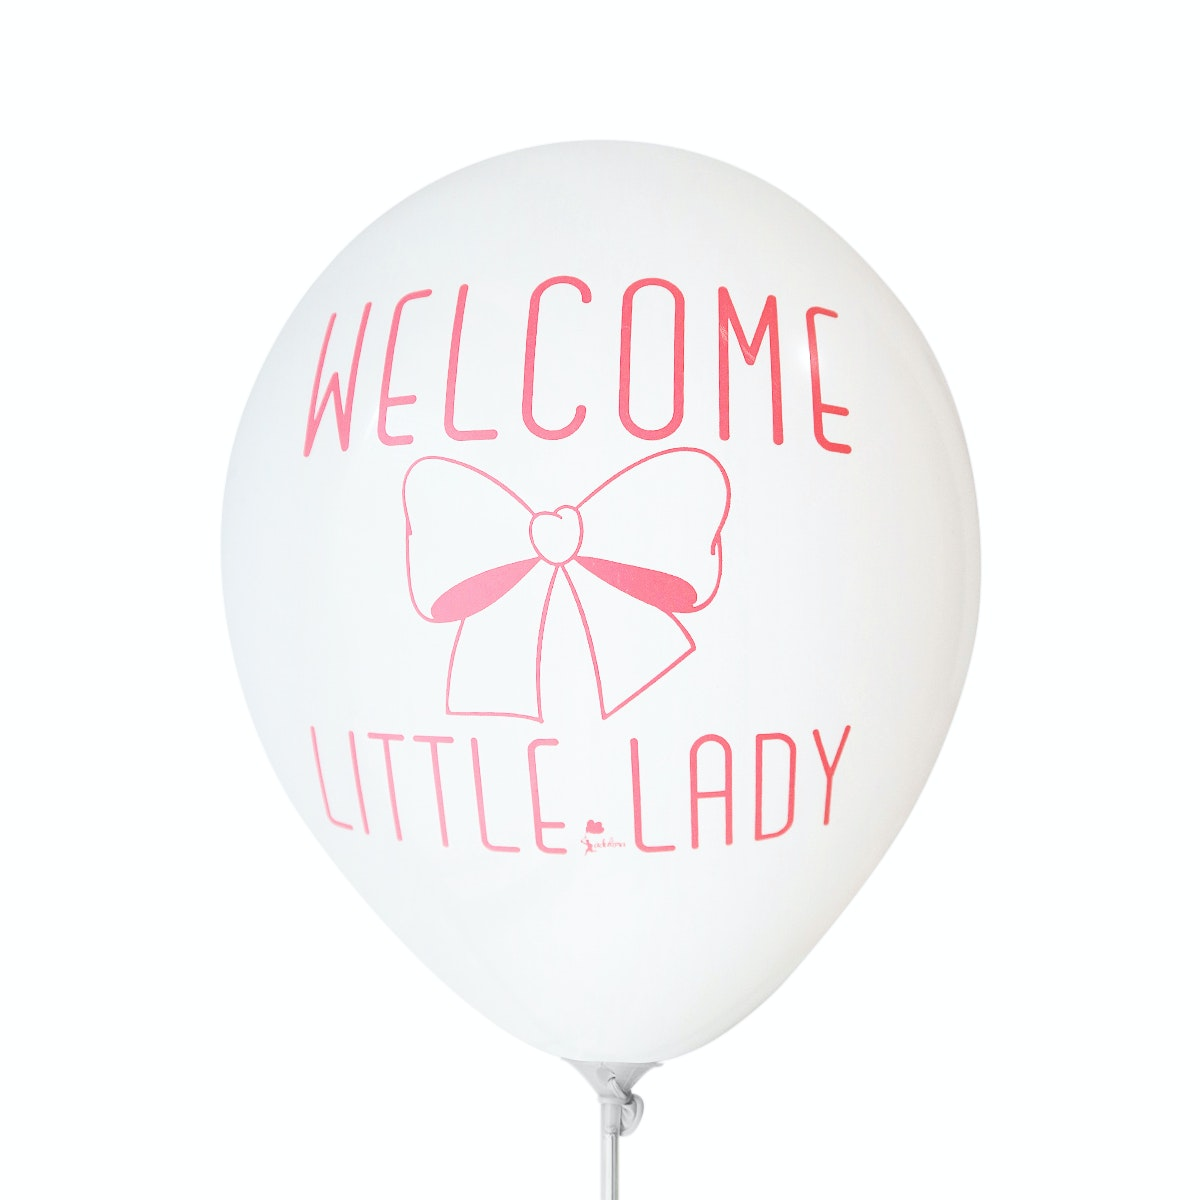 Adalima Balloon Balon Latex Welcome Little Lady White QQ